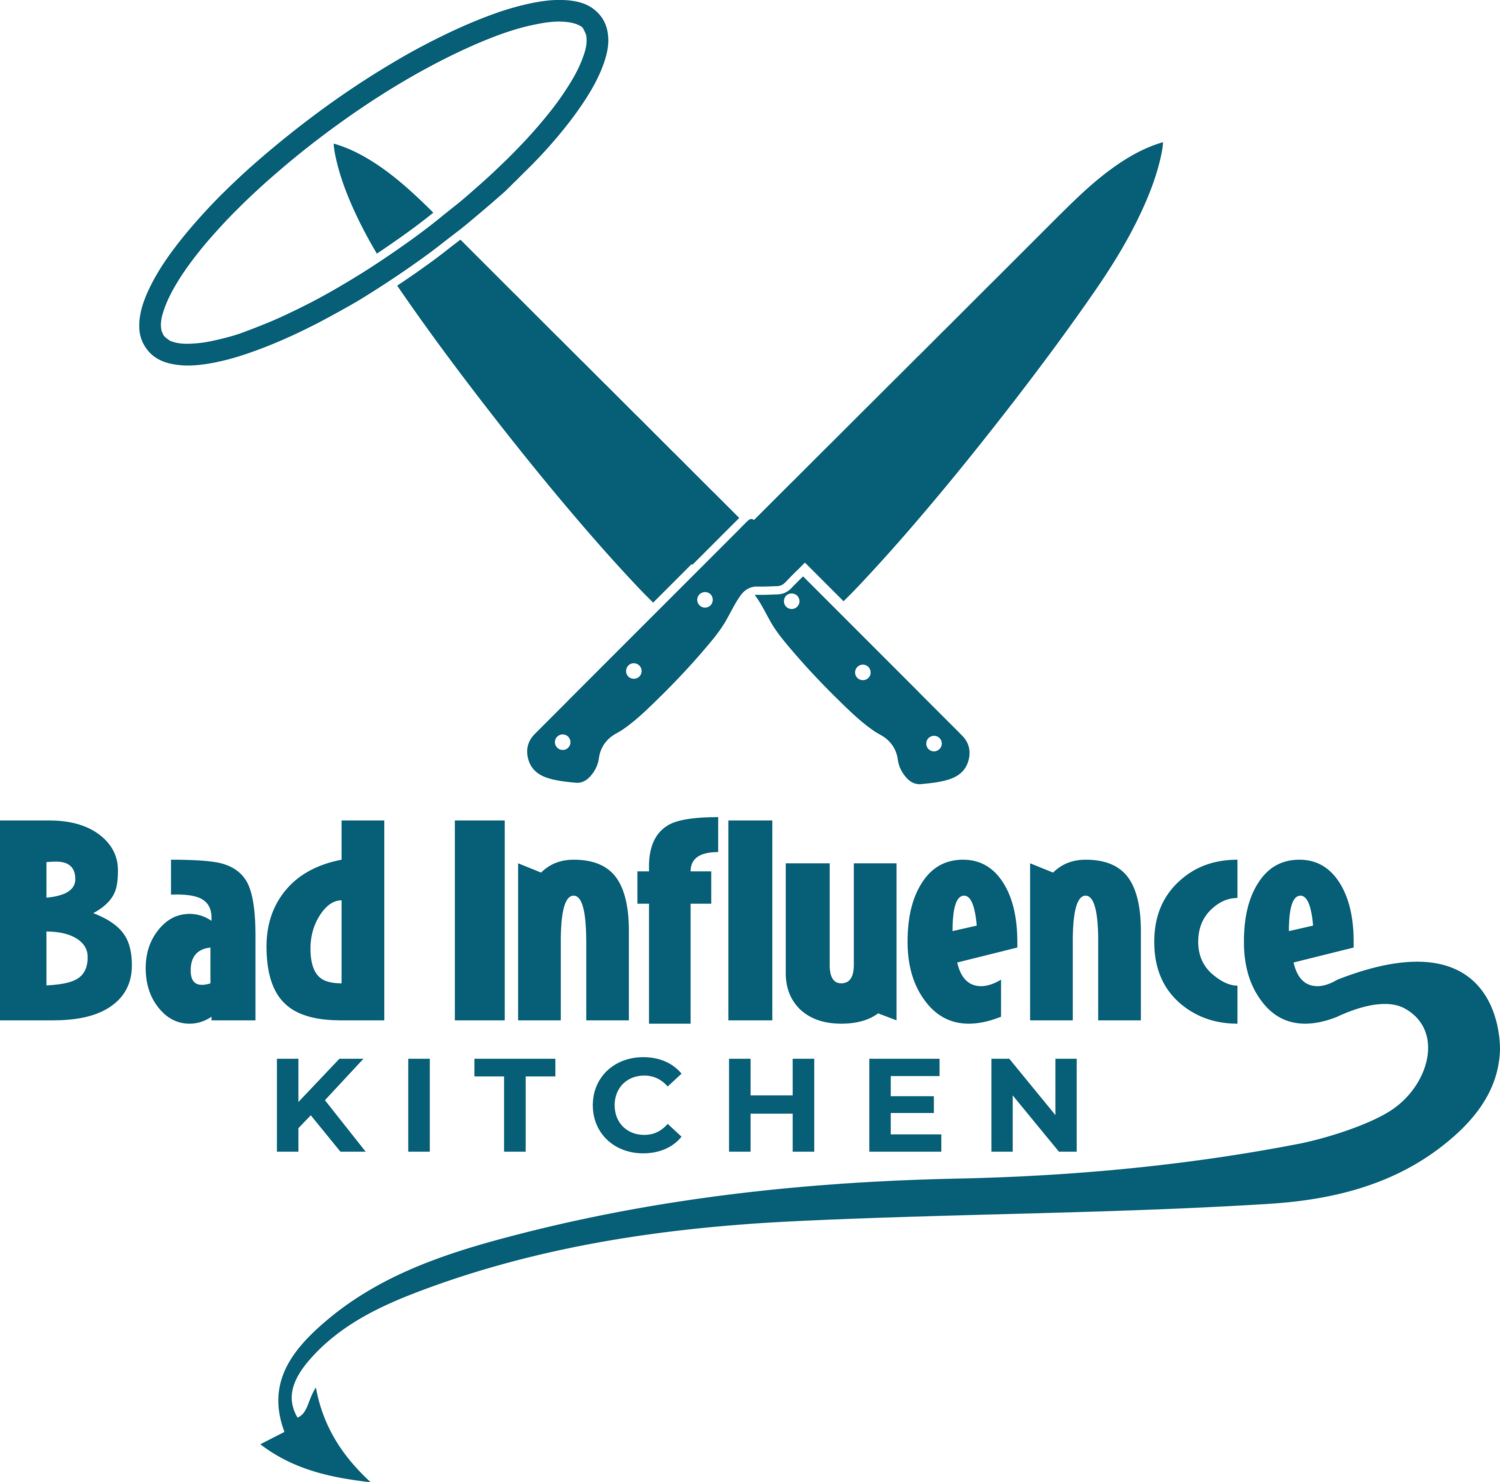 Bad Influence Kitchen